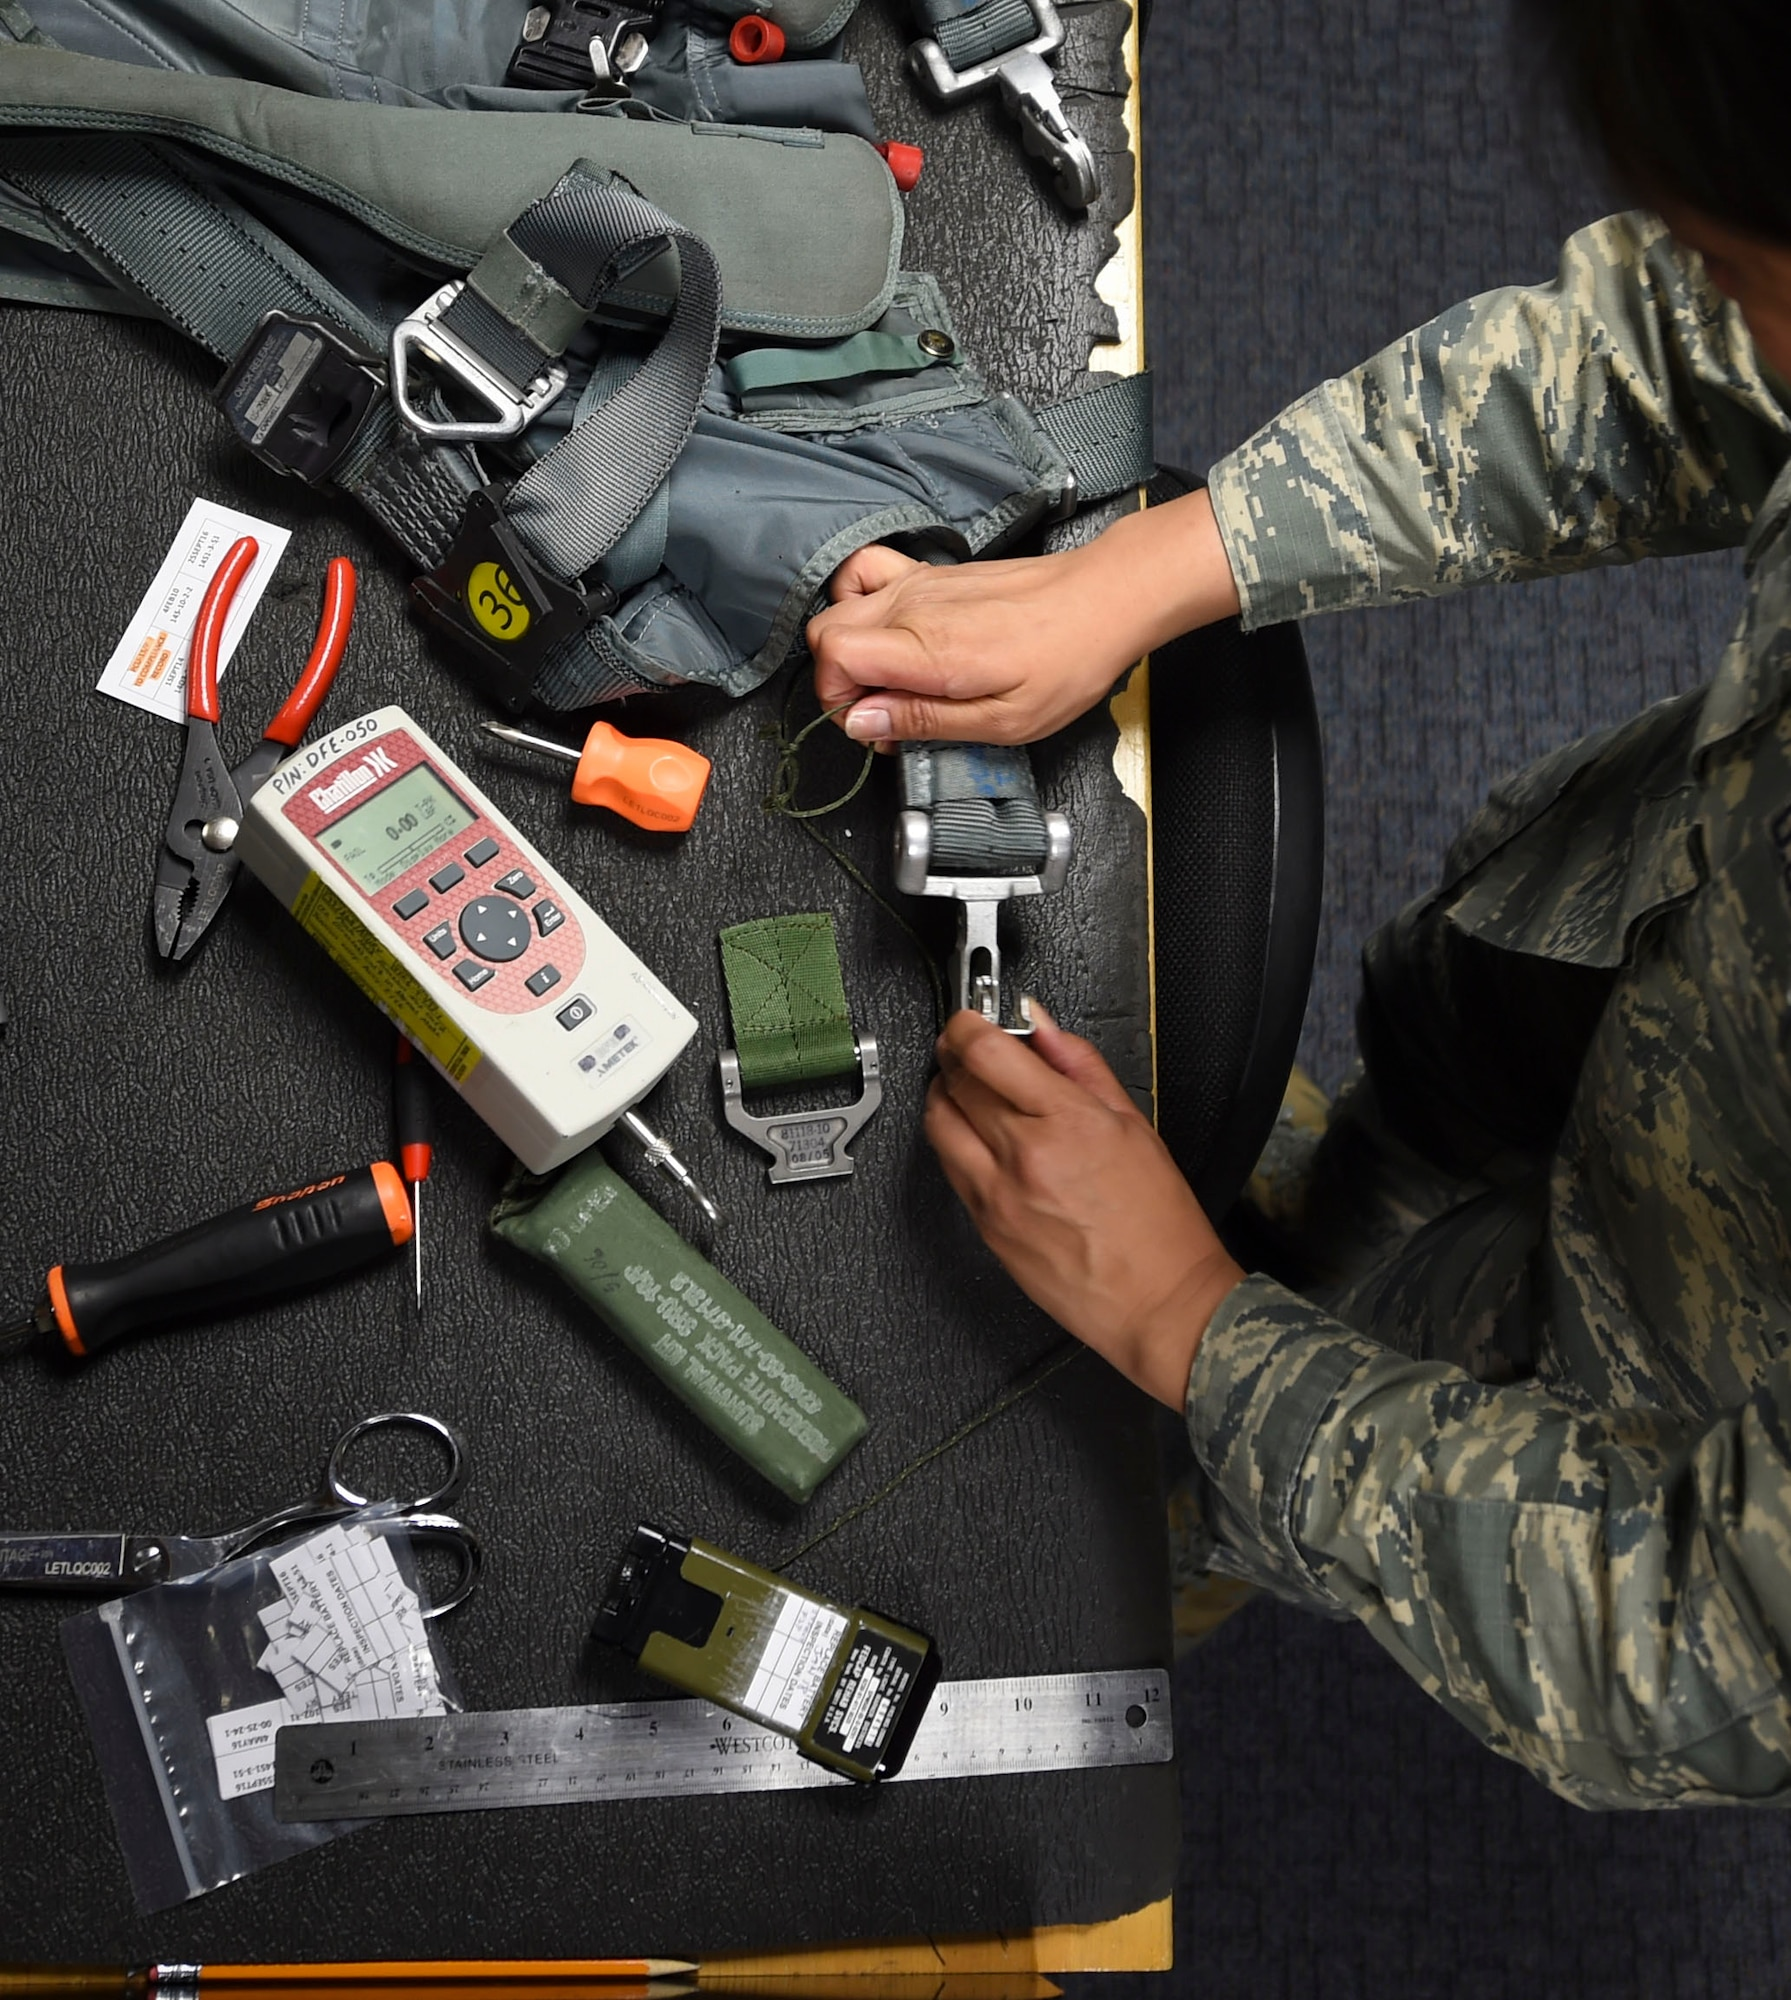 U.S. Air Force Airman 1st Class Femylyn Plan, 1st Operation Support Squadron aircrew flight equipment technician, repairs a parachute harness at Joint Base Langley-Eustis, Va., Feb. 27, 2017. The harness attaches to the parachute, securing a pilot to the chute in an emergency egress. (U.S. Air Force photo by Staff Sgt. Natasha Stannard)